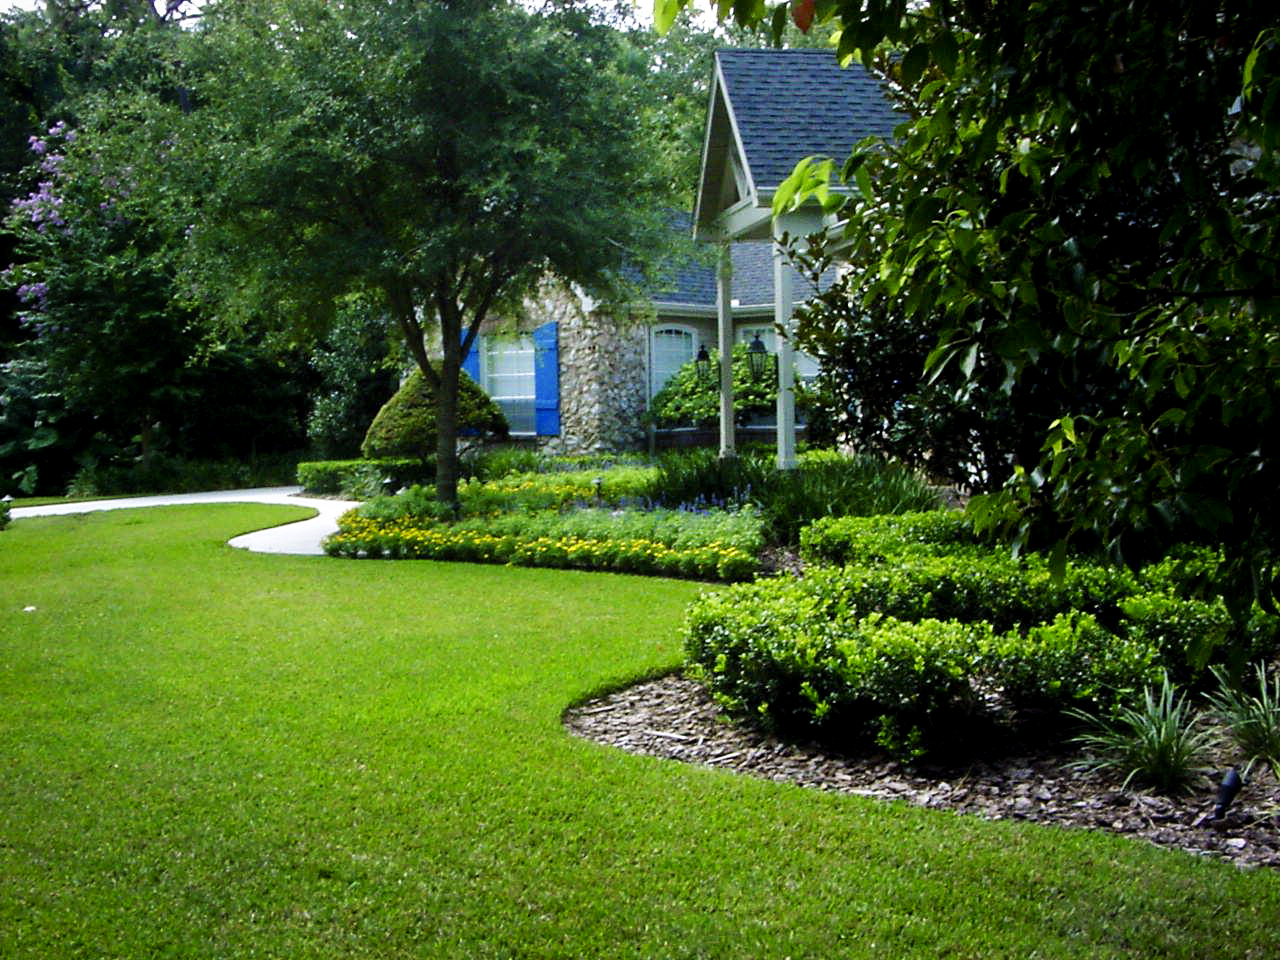 Design Plan: Ideas for landscaping my backyard